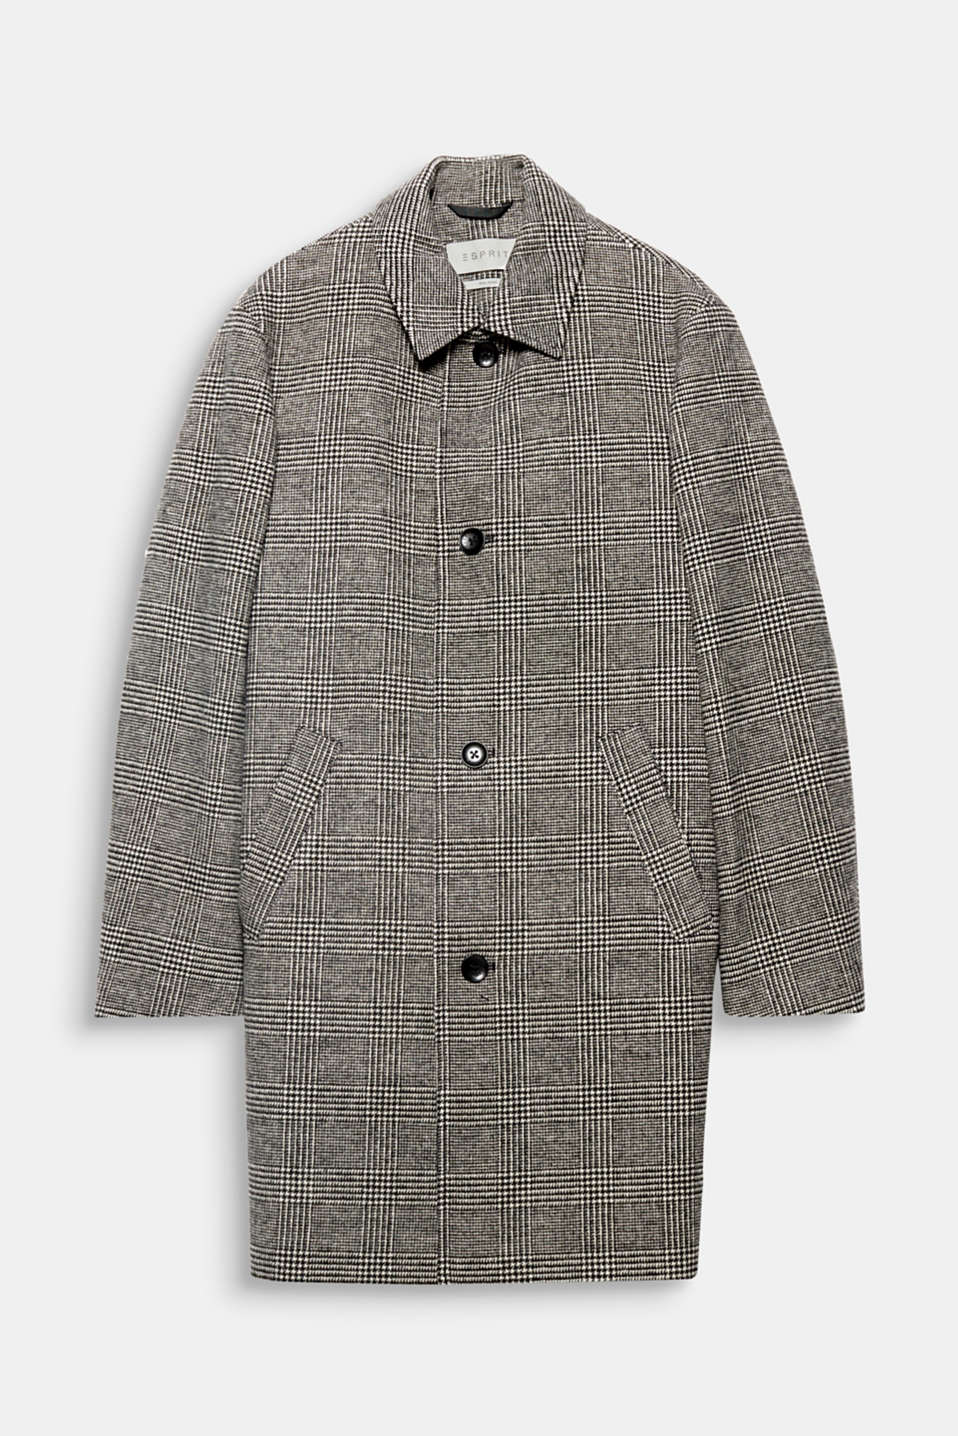 The elegant wool blend and classic Prince of Wales check pattern gives this coat its dapper look.